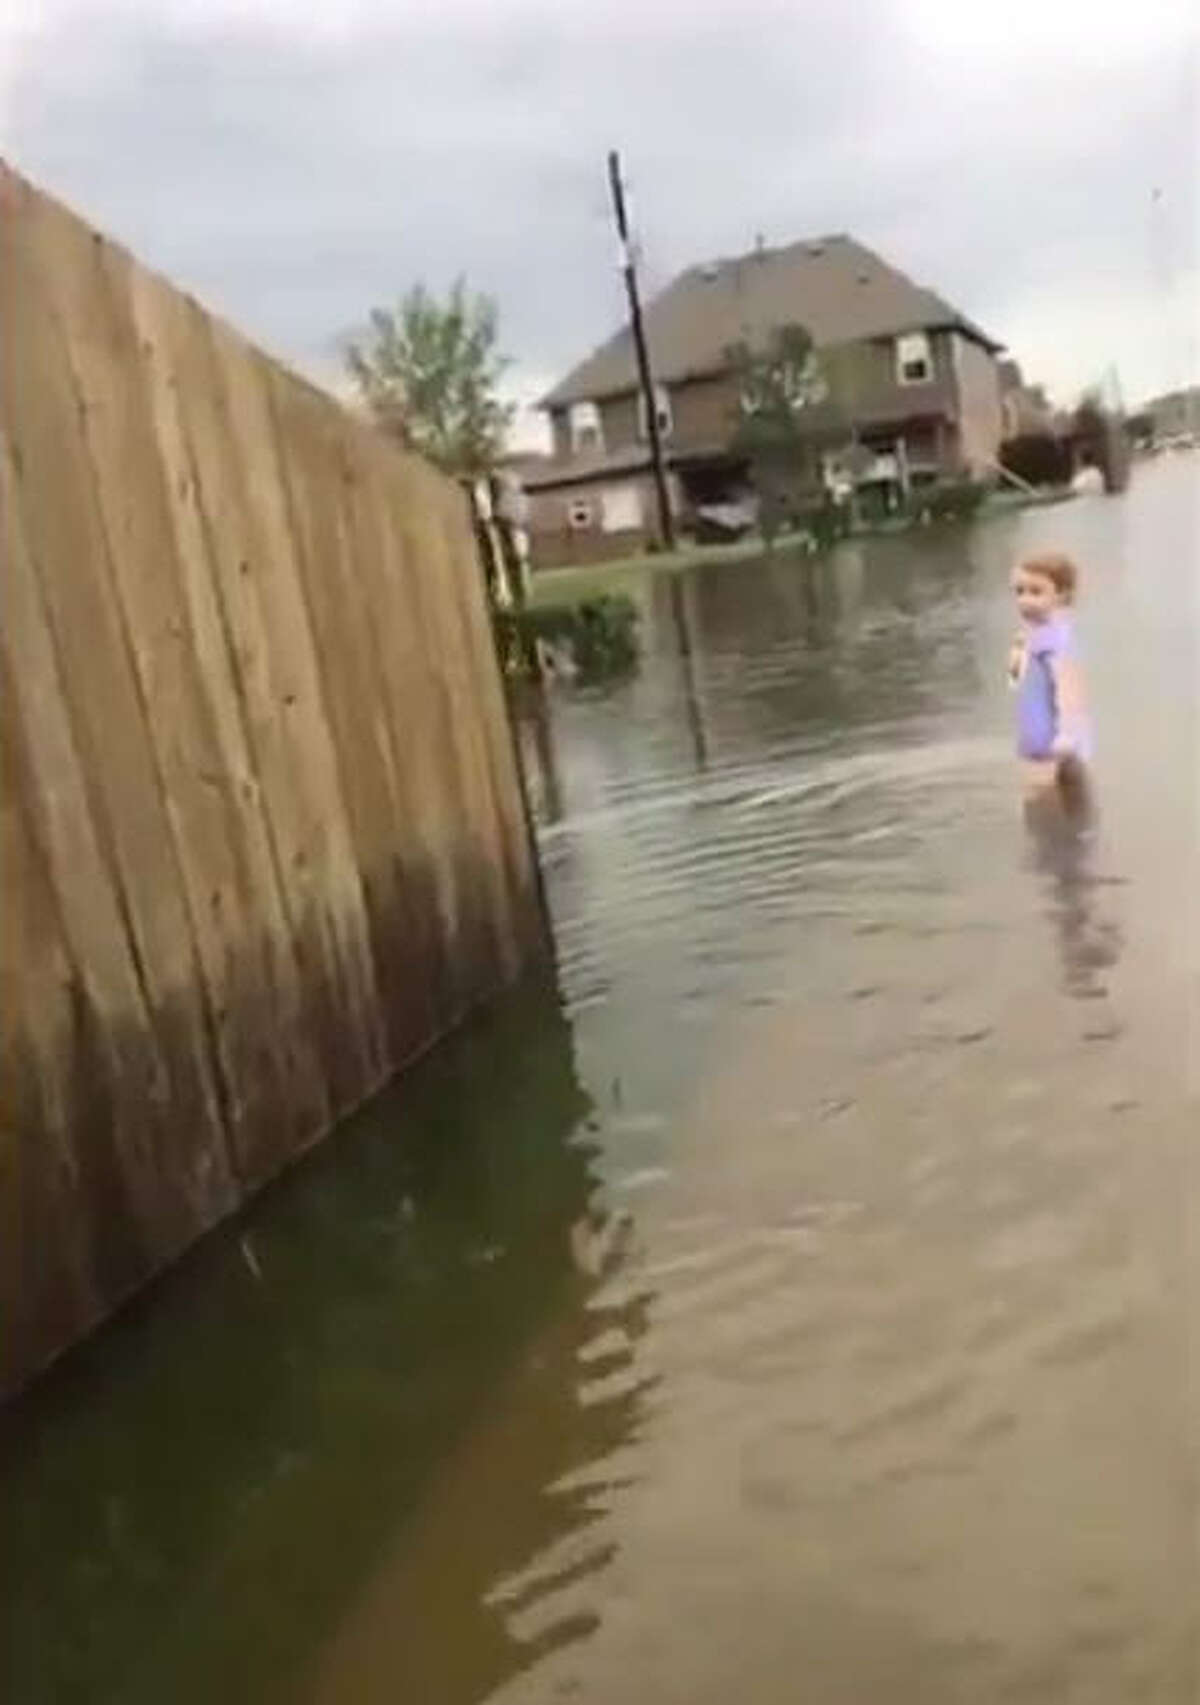 Videos taken by Pearland teen Renz Michael show a little girl in a diaper clutching her sippy cup wandering the flooded streets during Harvey. Keep going through the gallery to see other shocking photos of what the Houston area looks like during Harvey.Source: Twitter